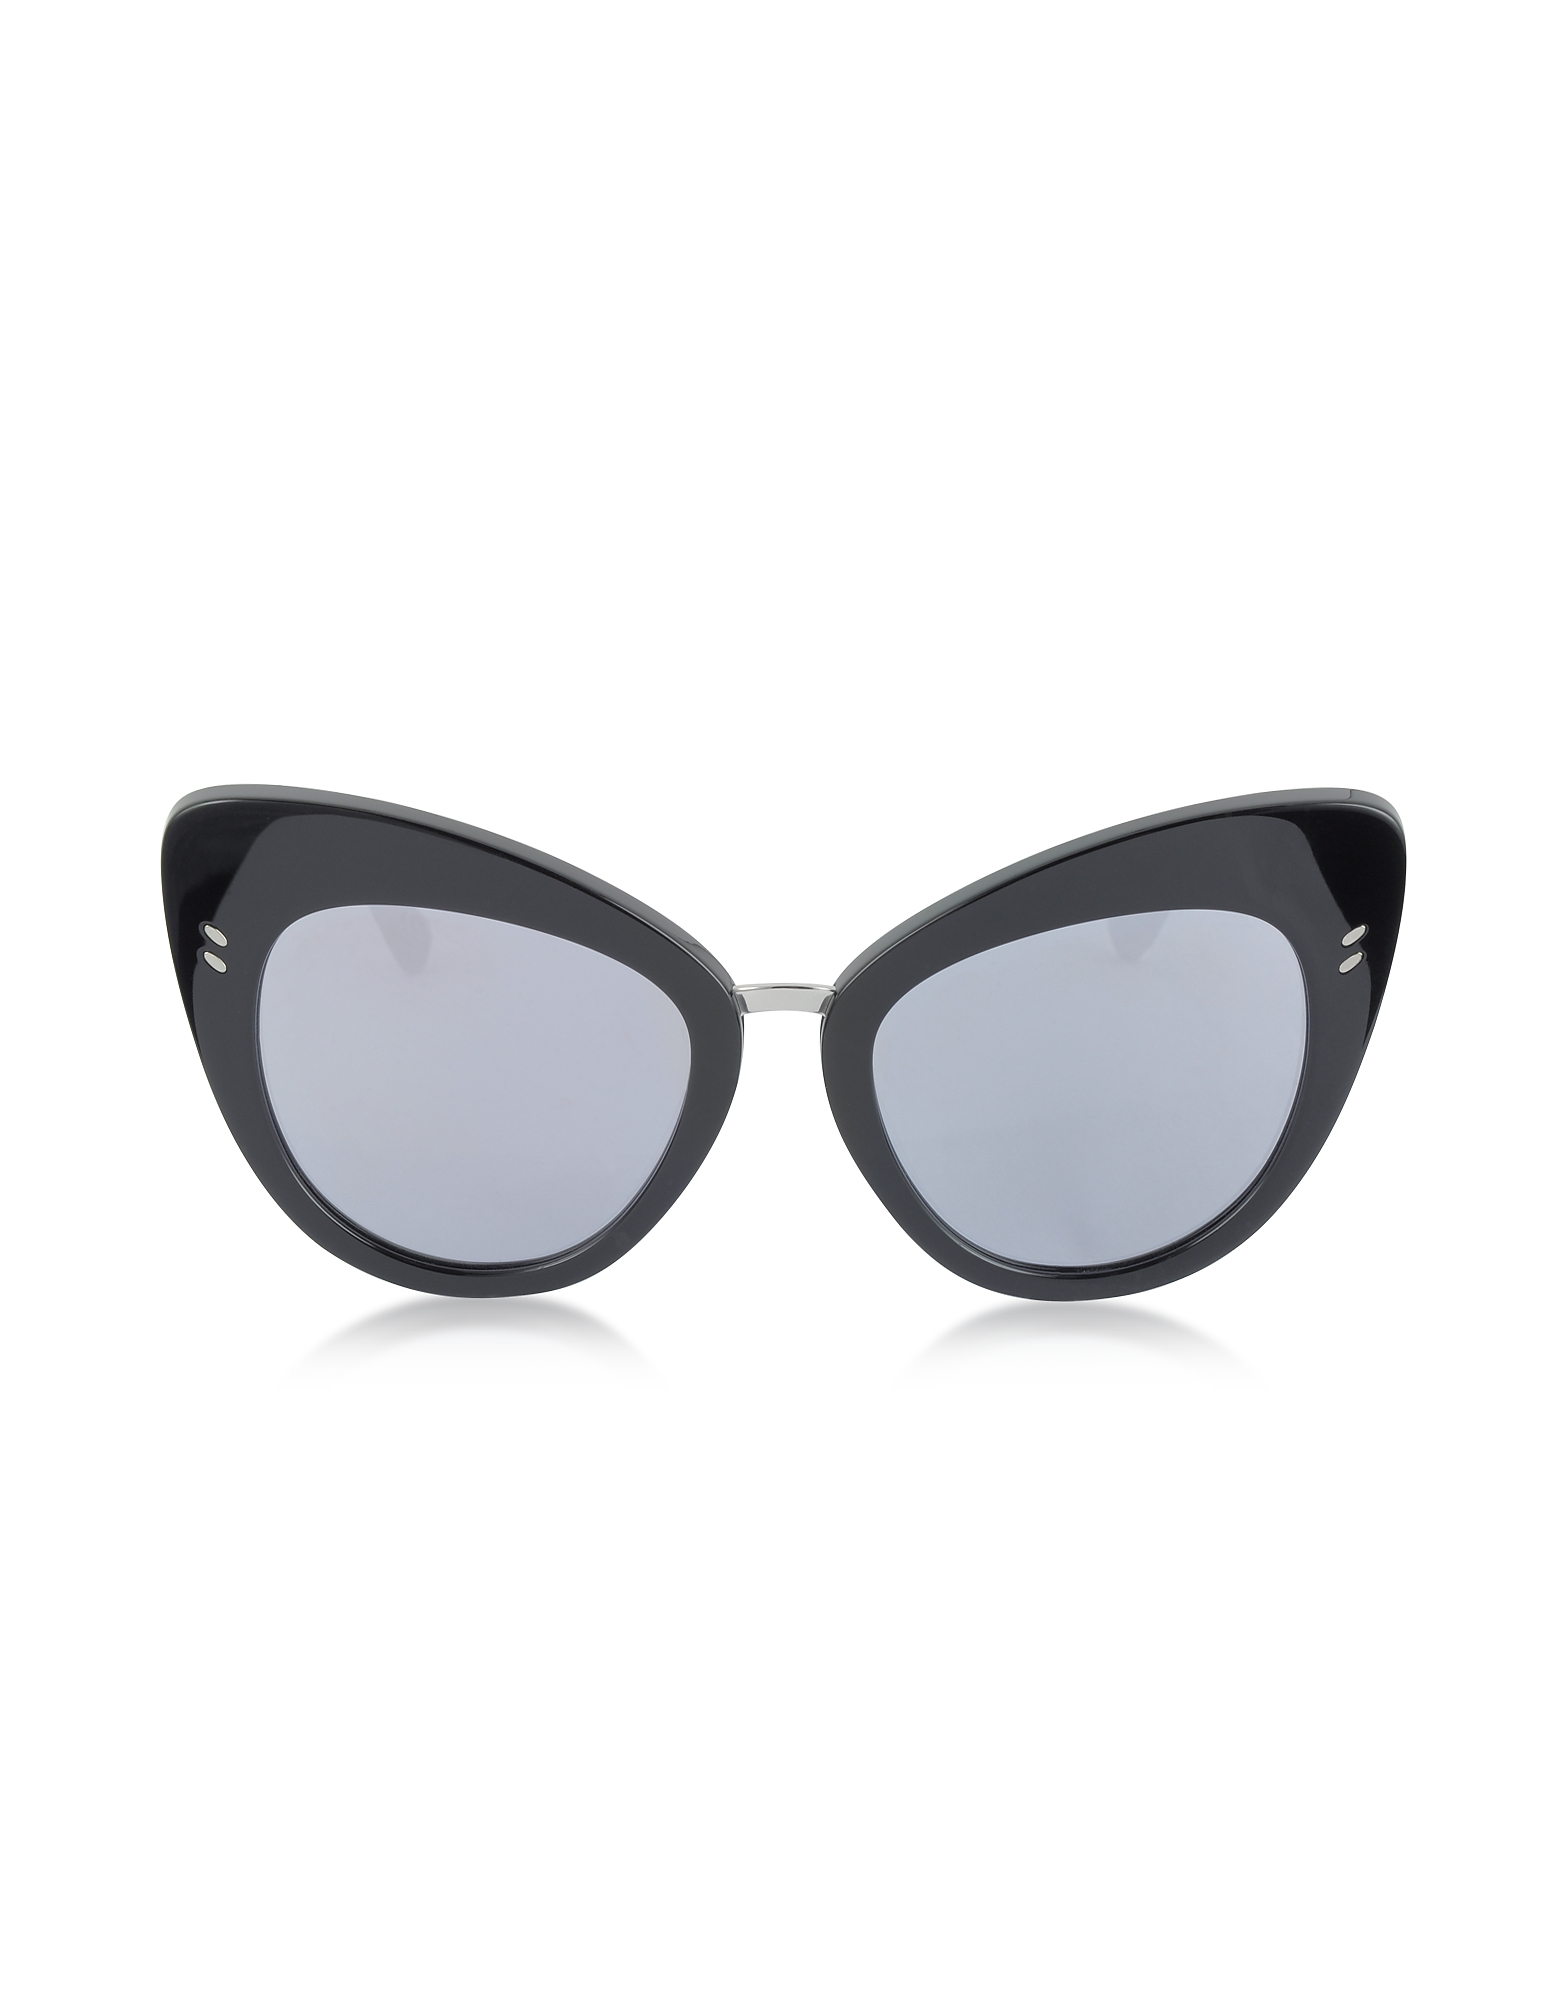 Stella McCartney Designer Sunglasses, SC0037S Acetate Cat Eye Women's Sunglasses